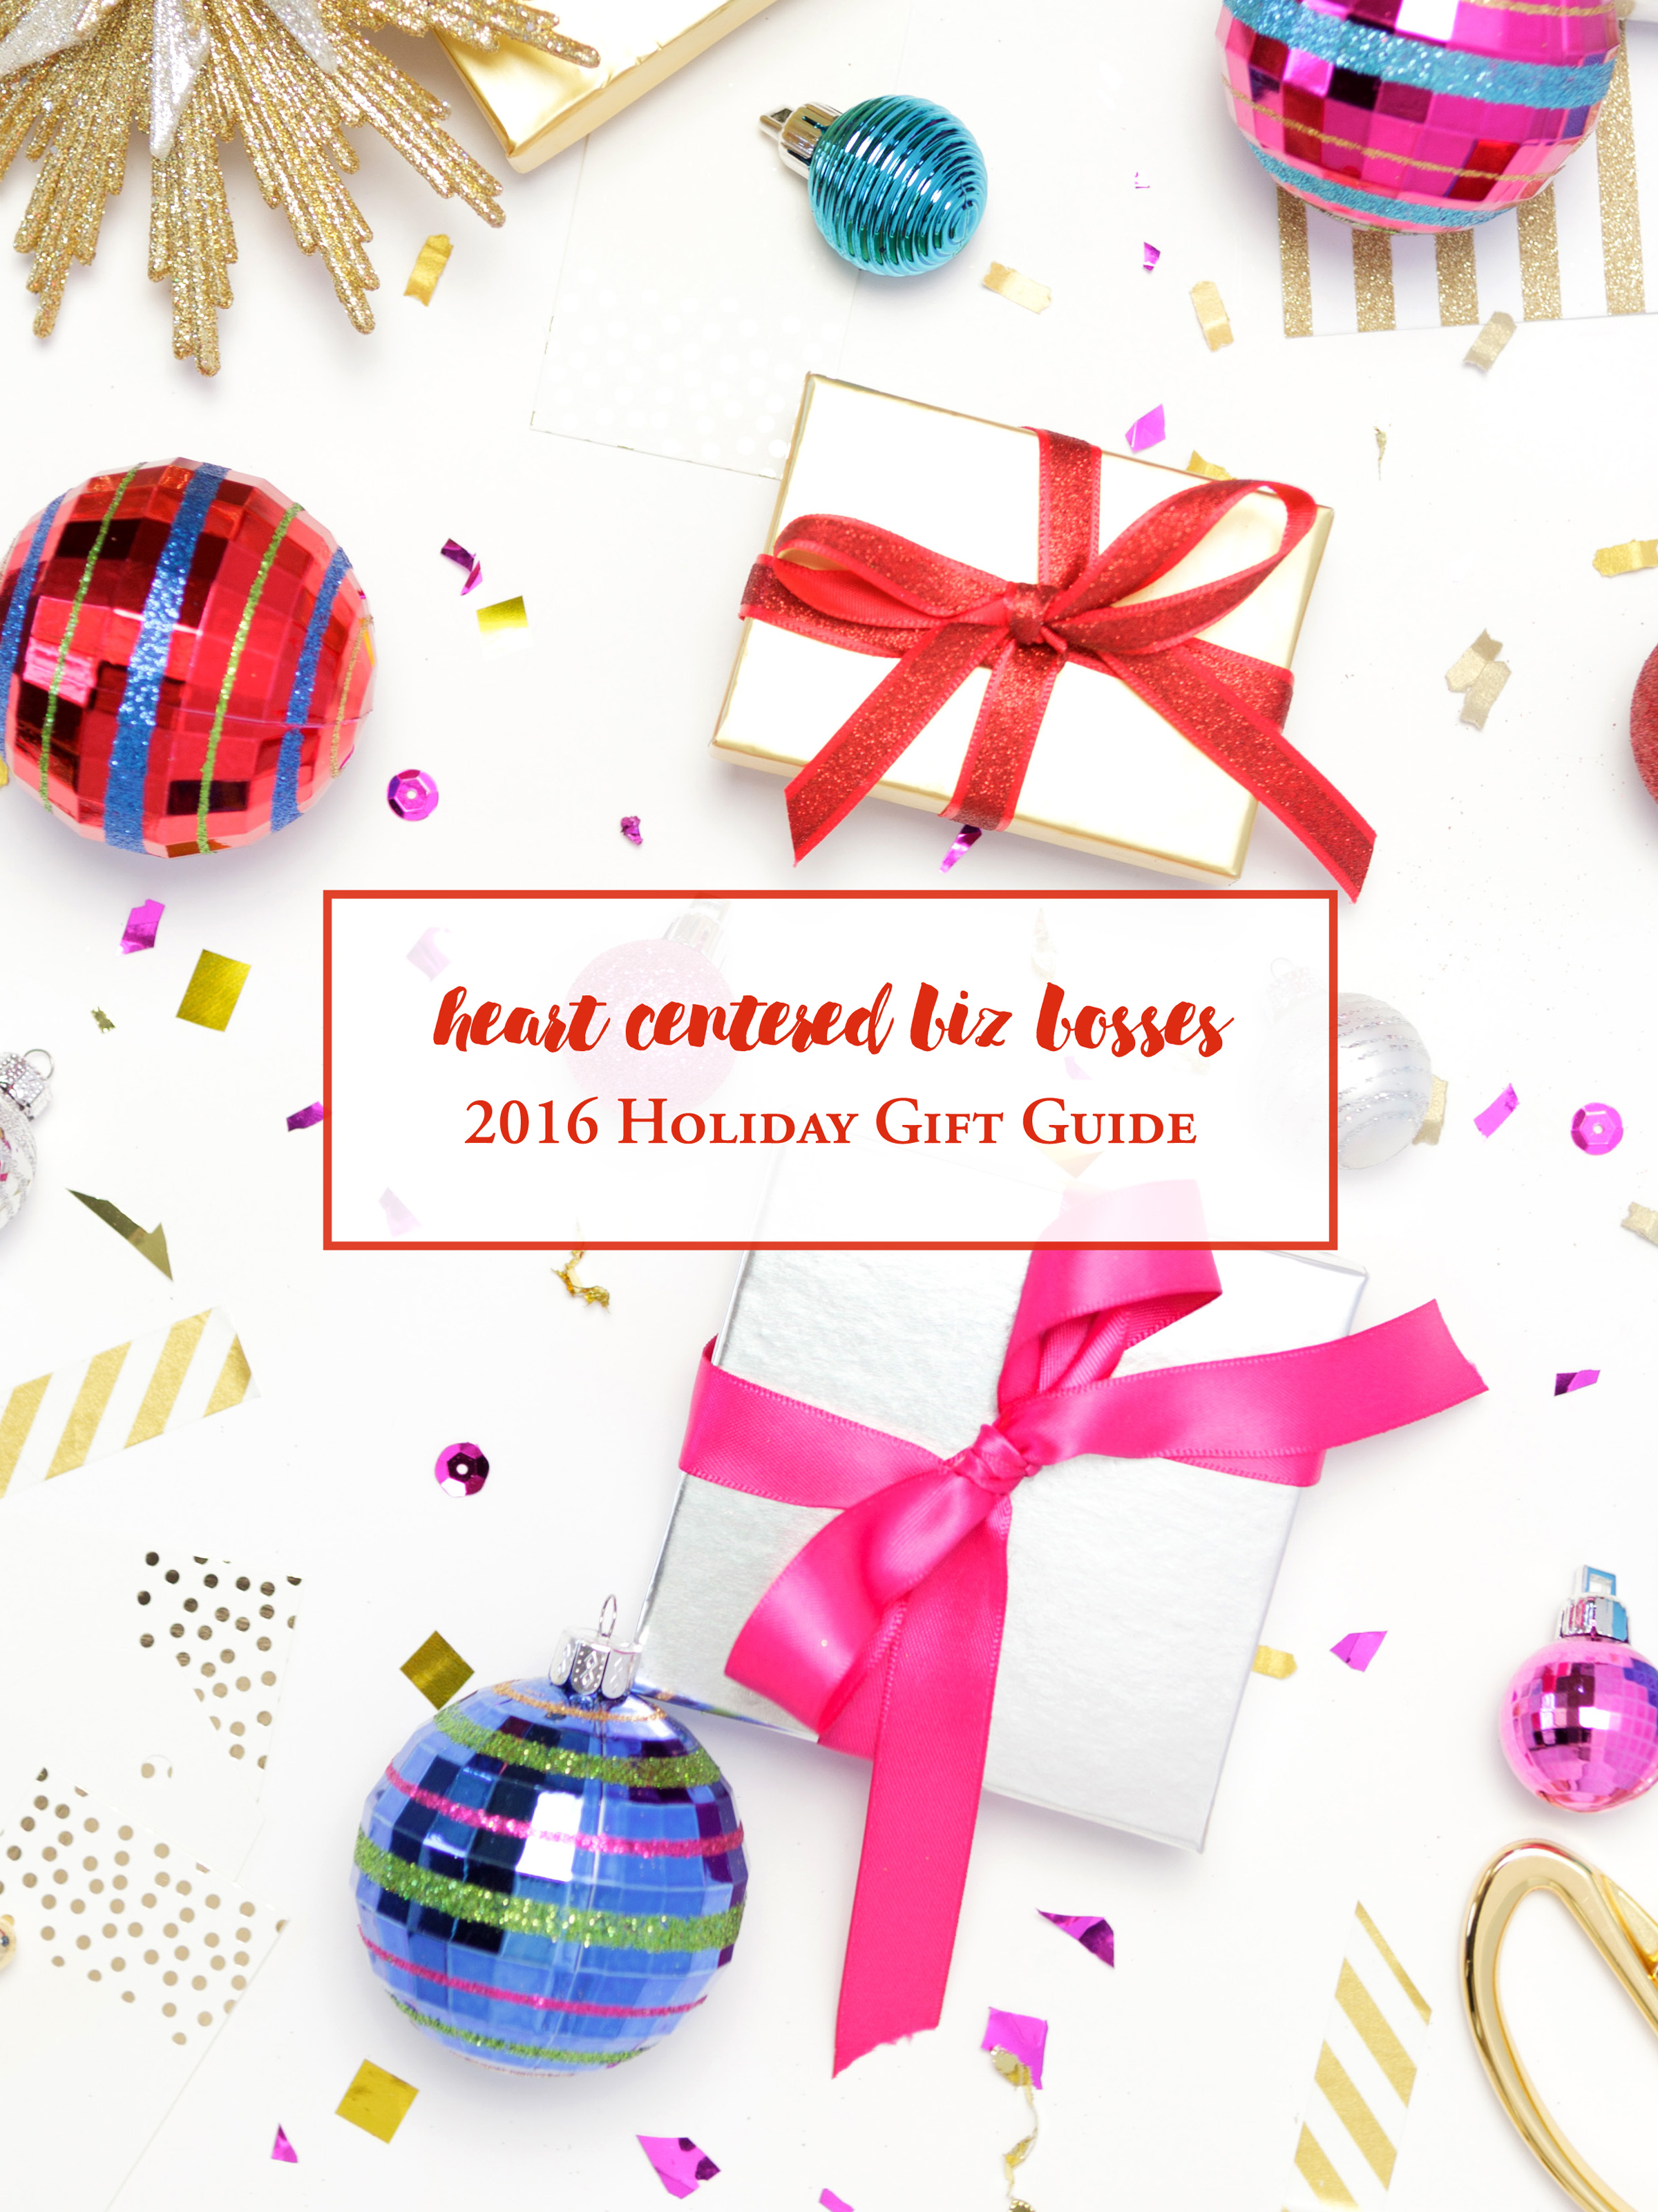 Heart Centered Biz Bosses Gift Guide